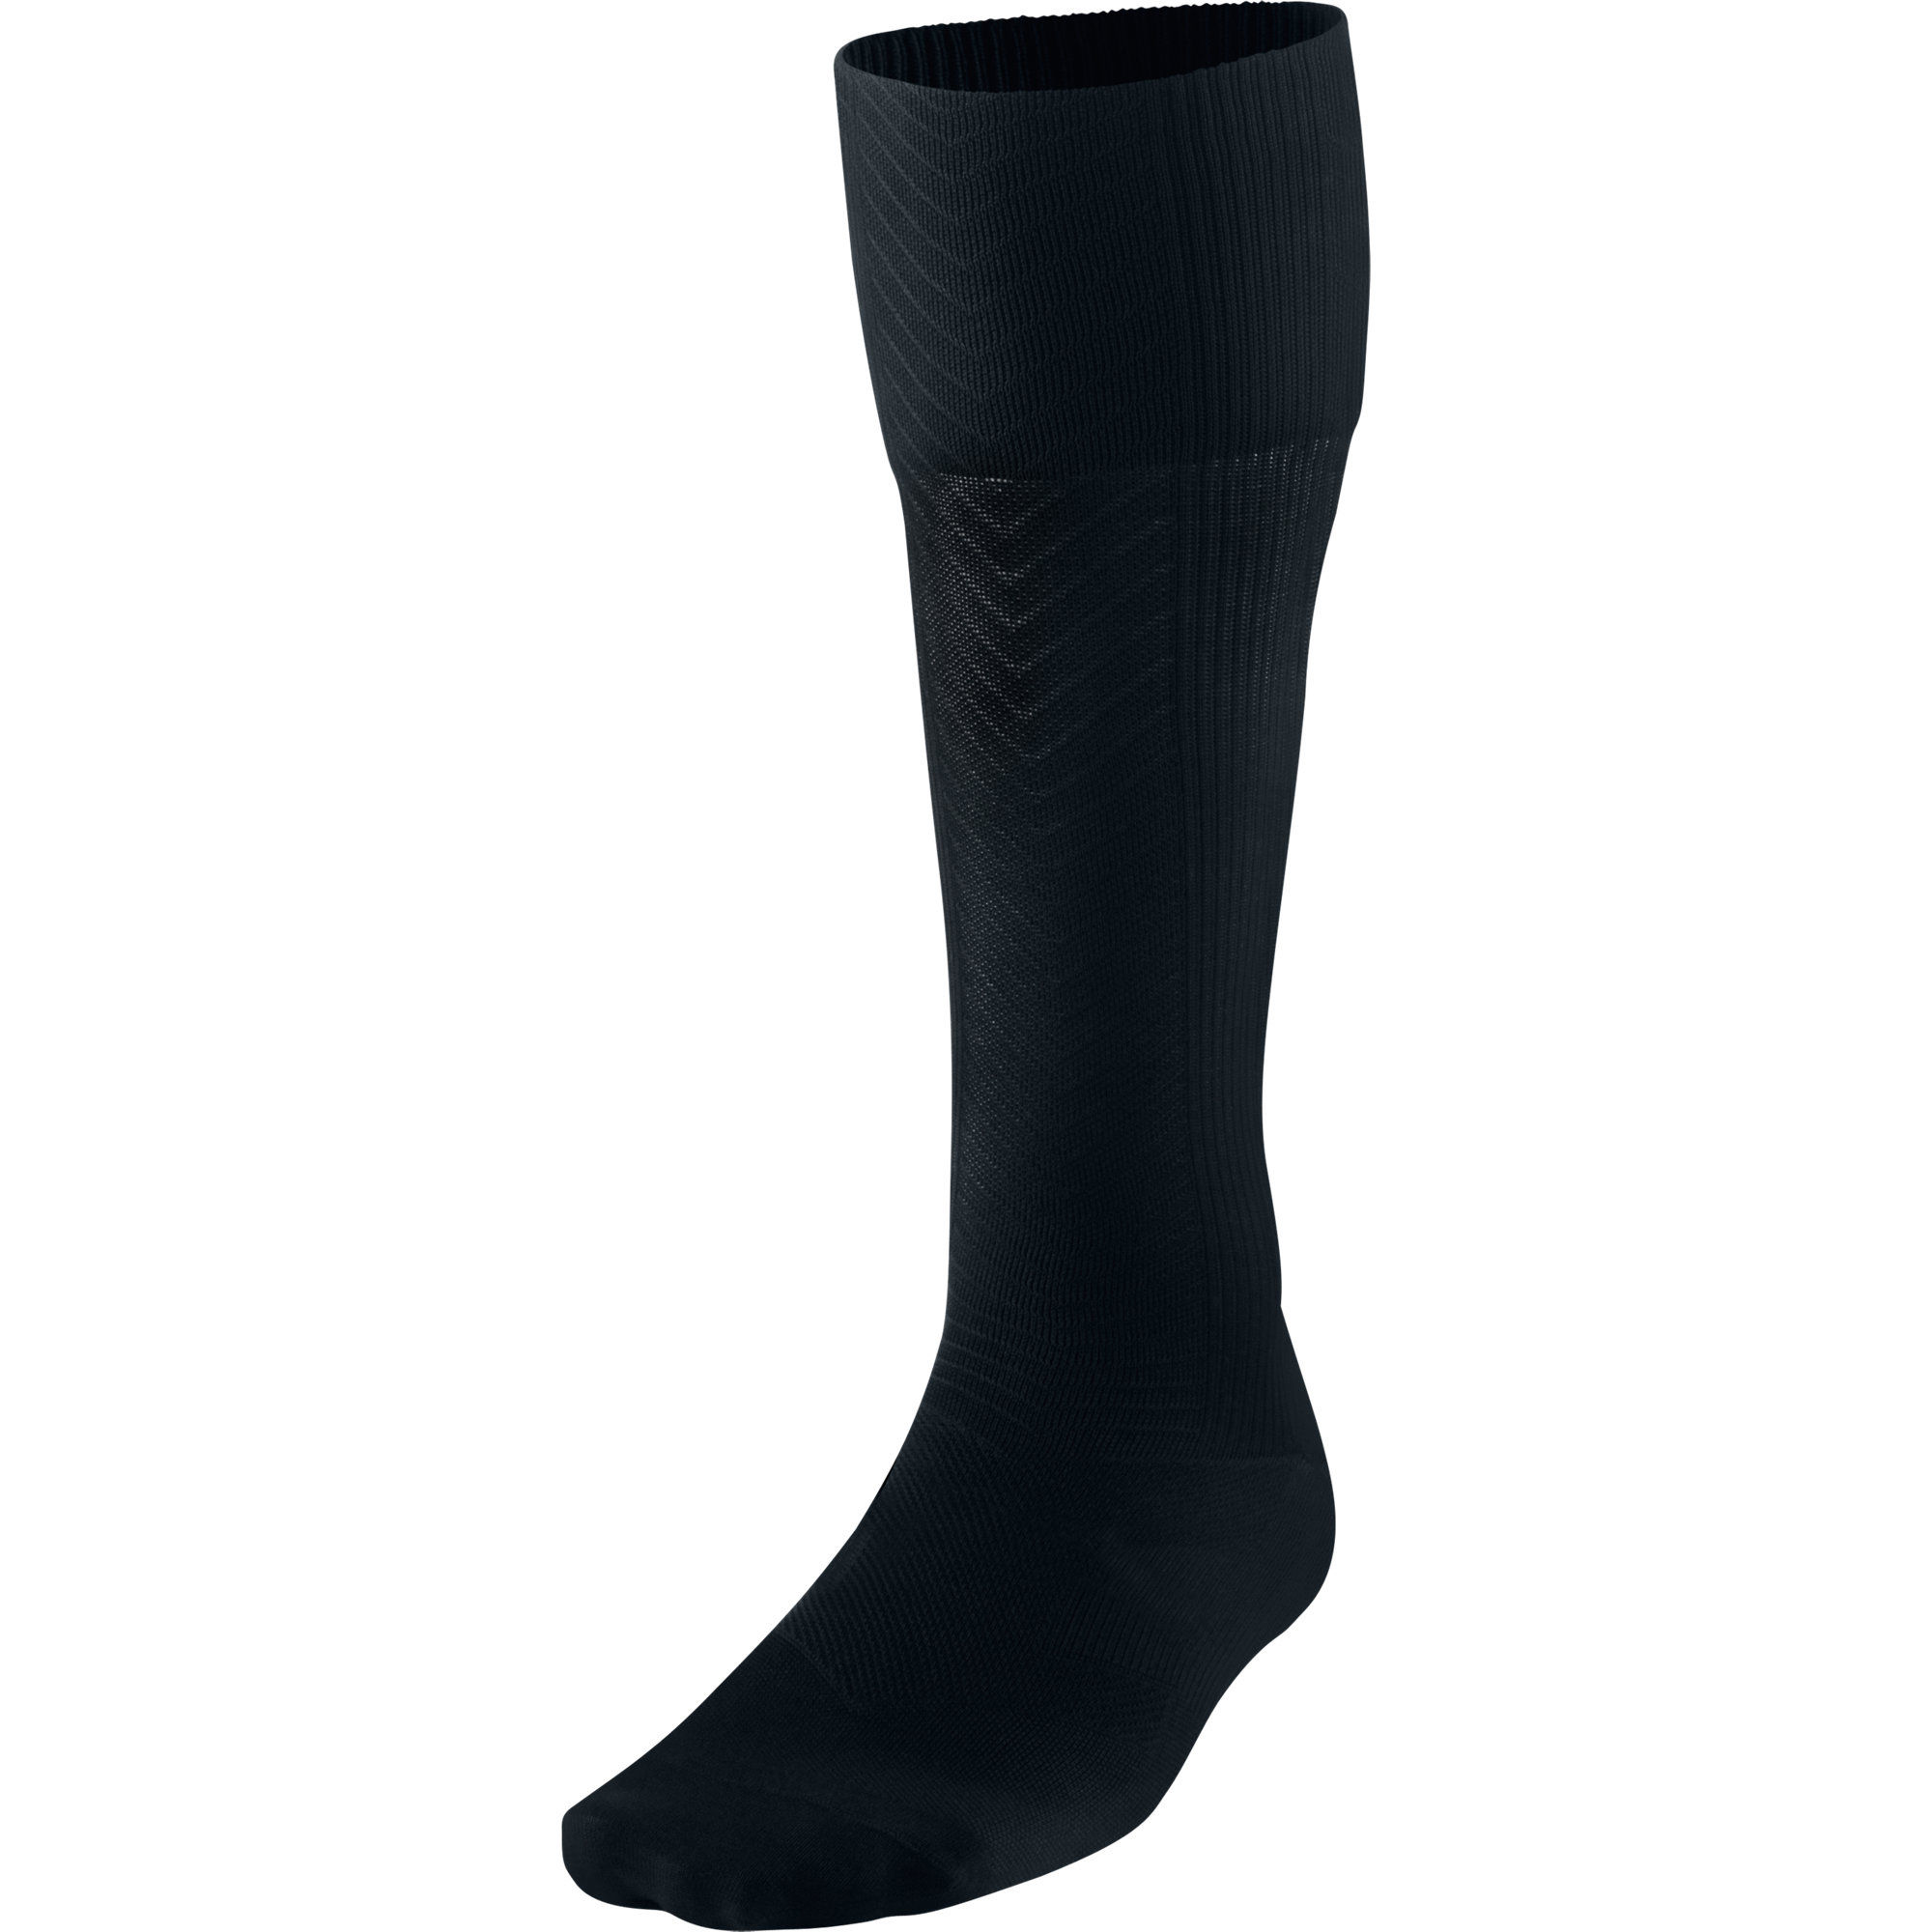 nike air max 03 boot - Wiggle | Nike Elite Running Stability 2 Compression Socks 2012 ...